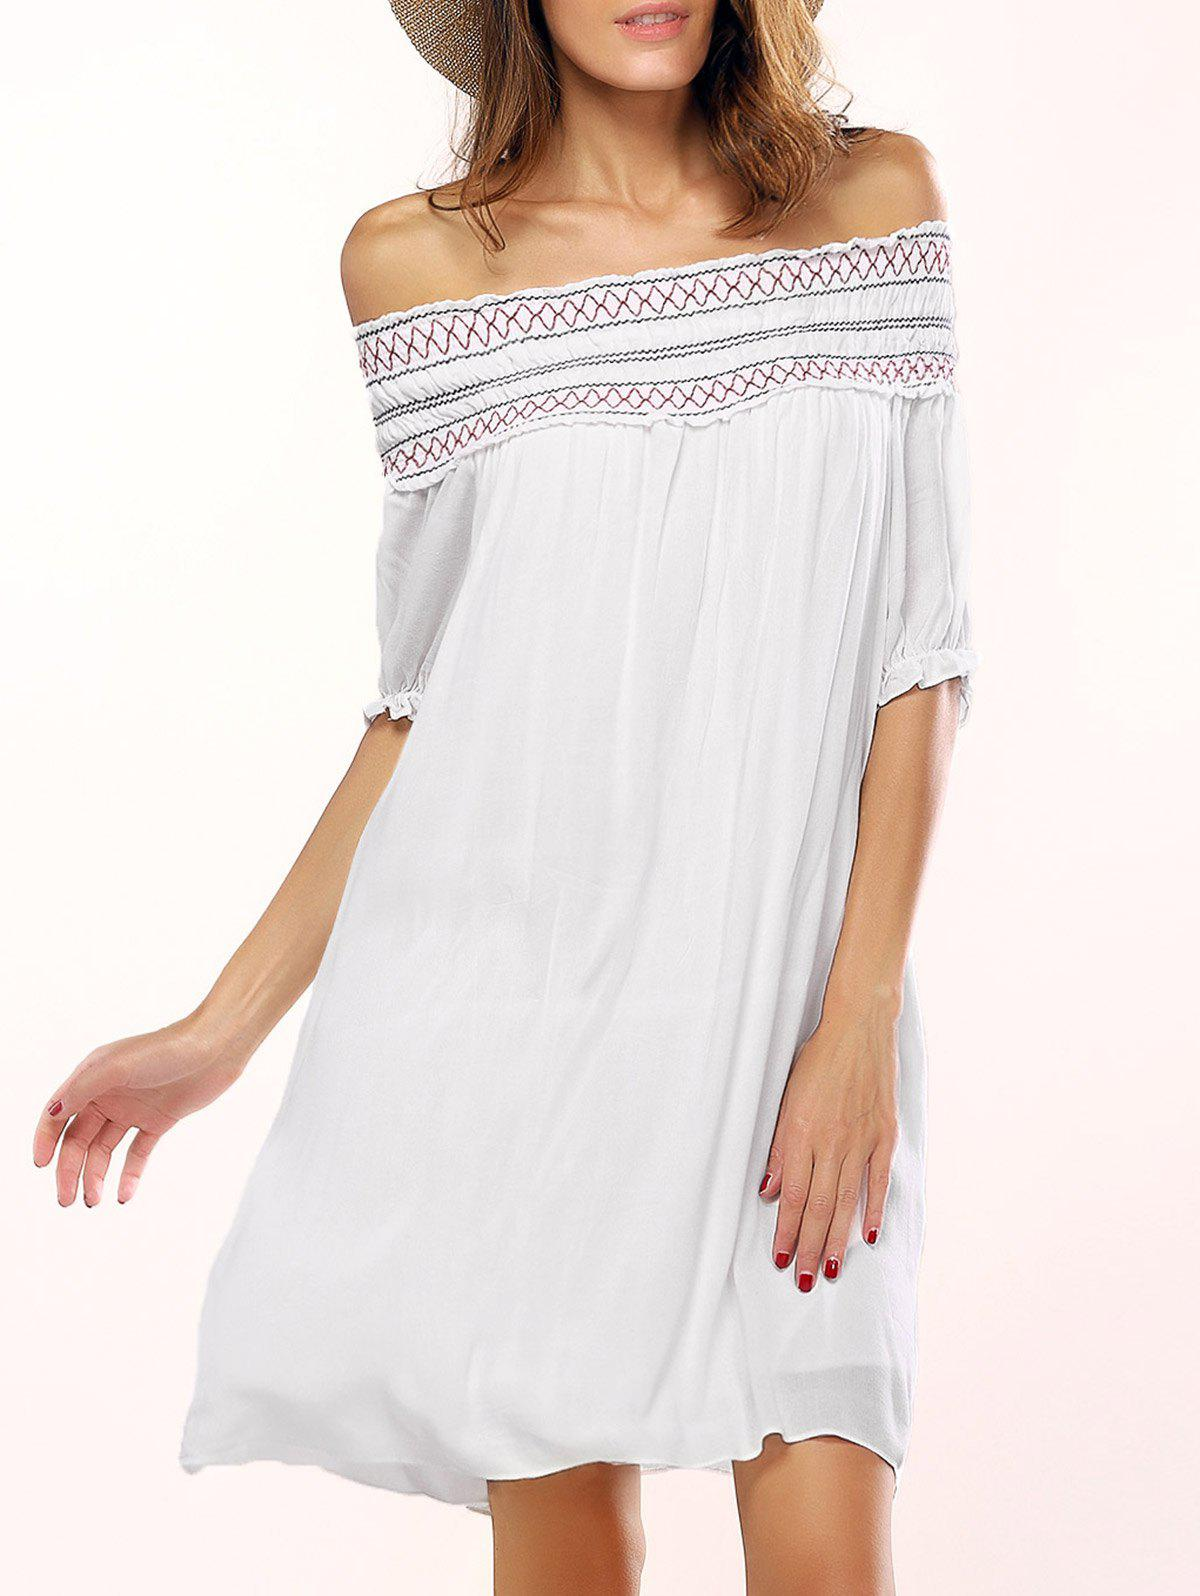 Off The Shoulder Geometric Embroidered Shift Dress - WHITE XL